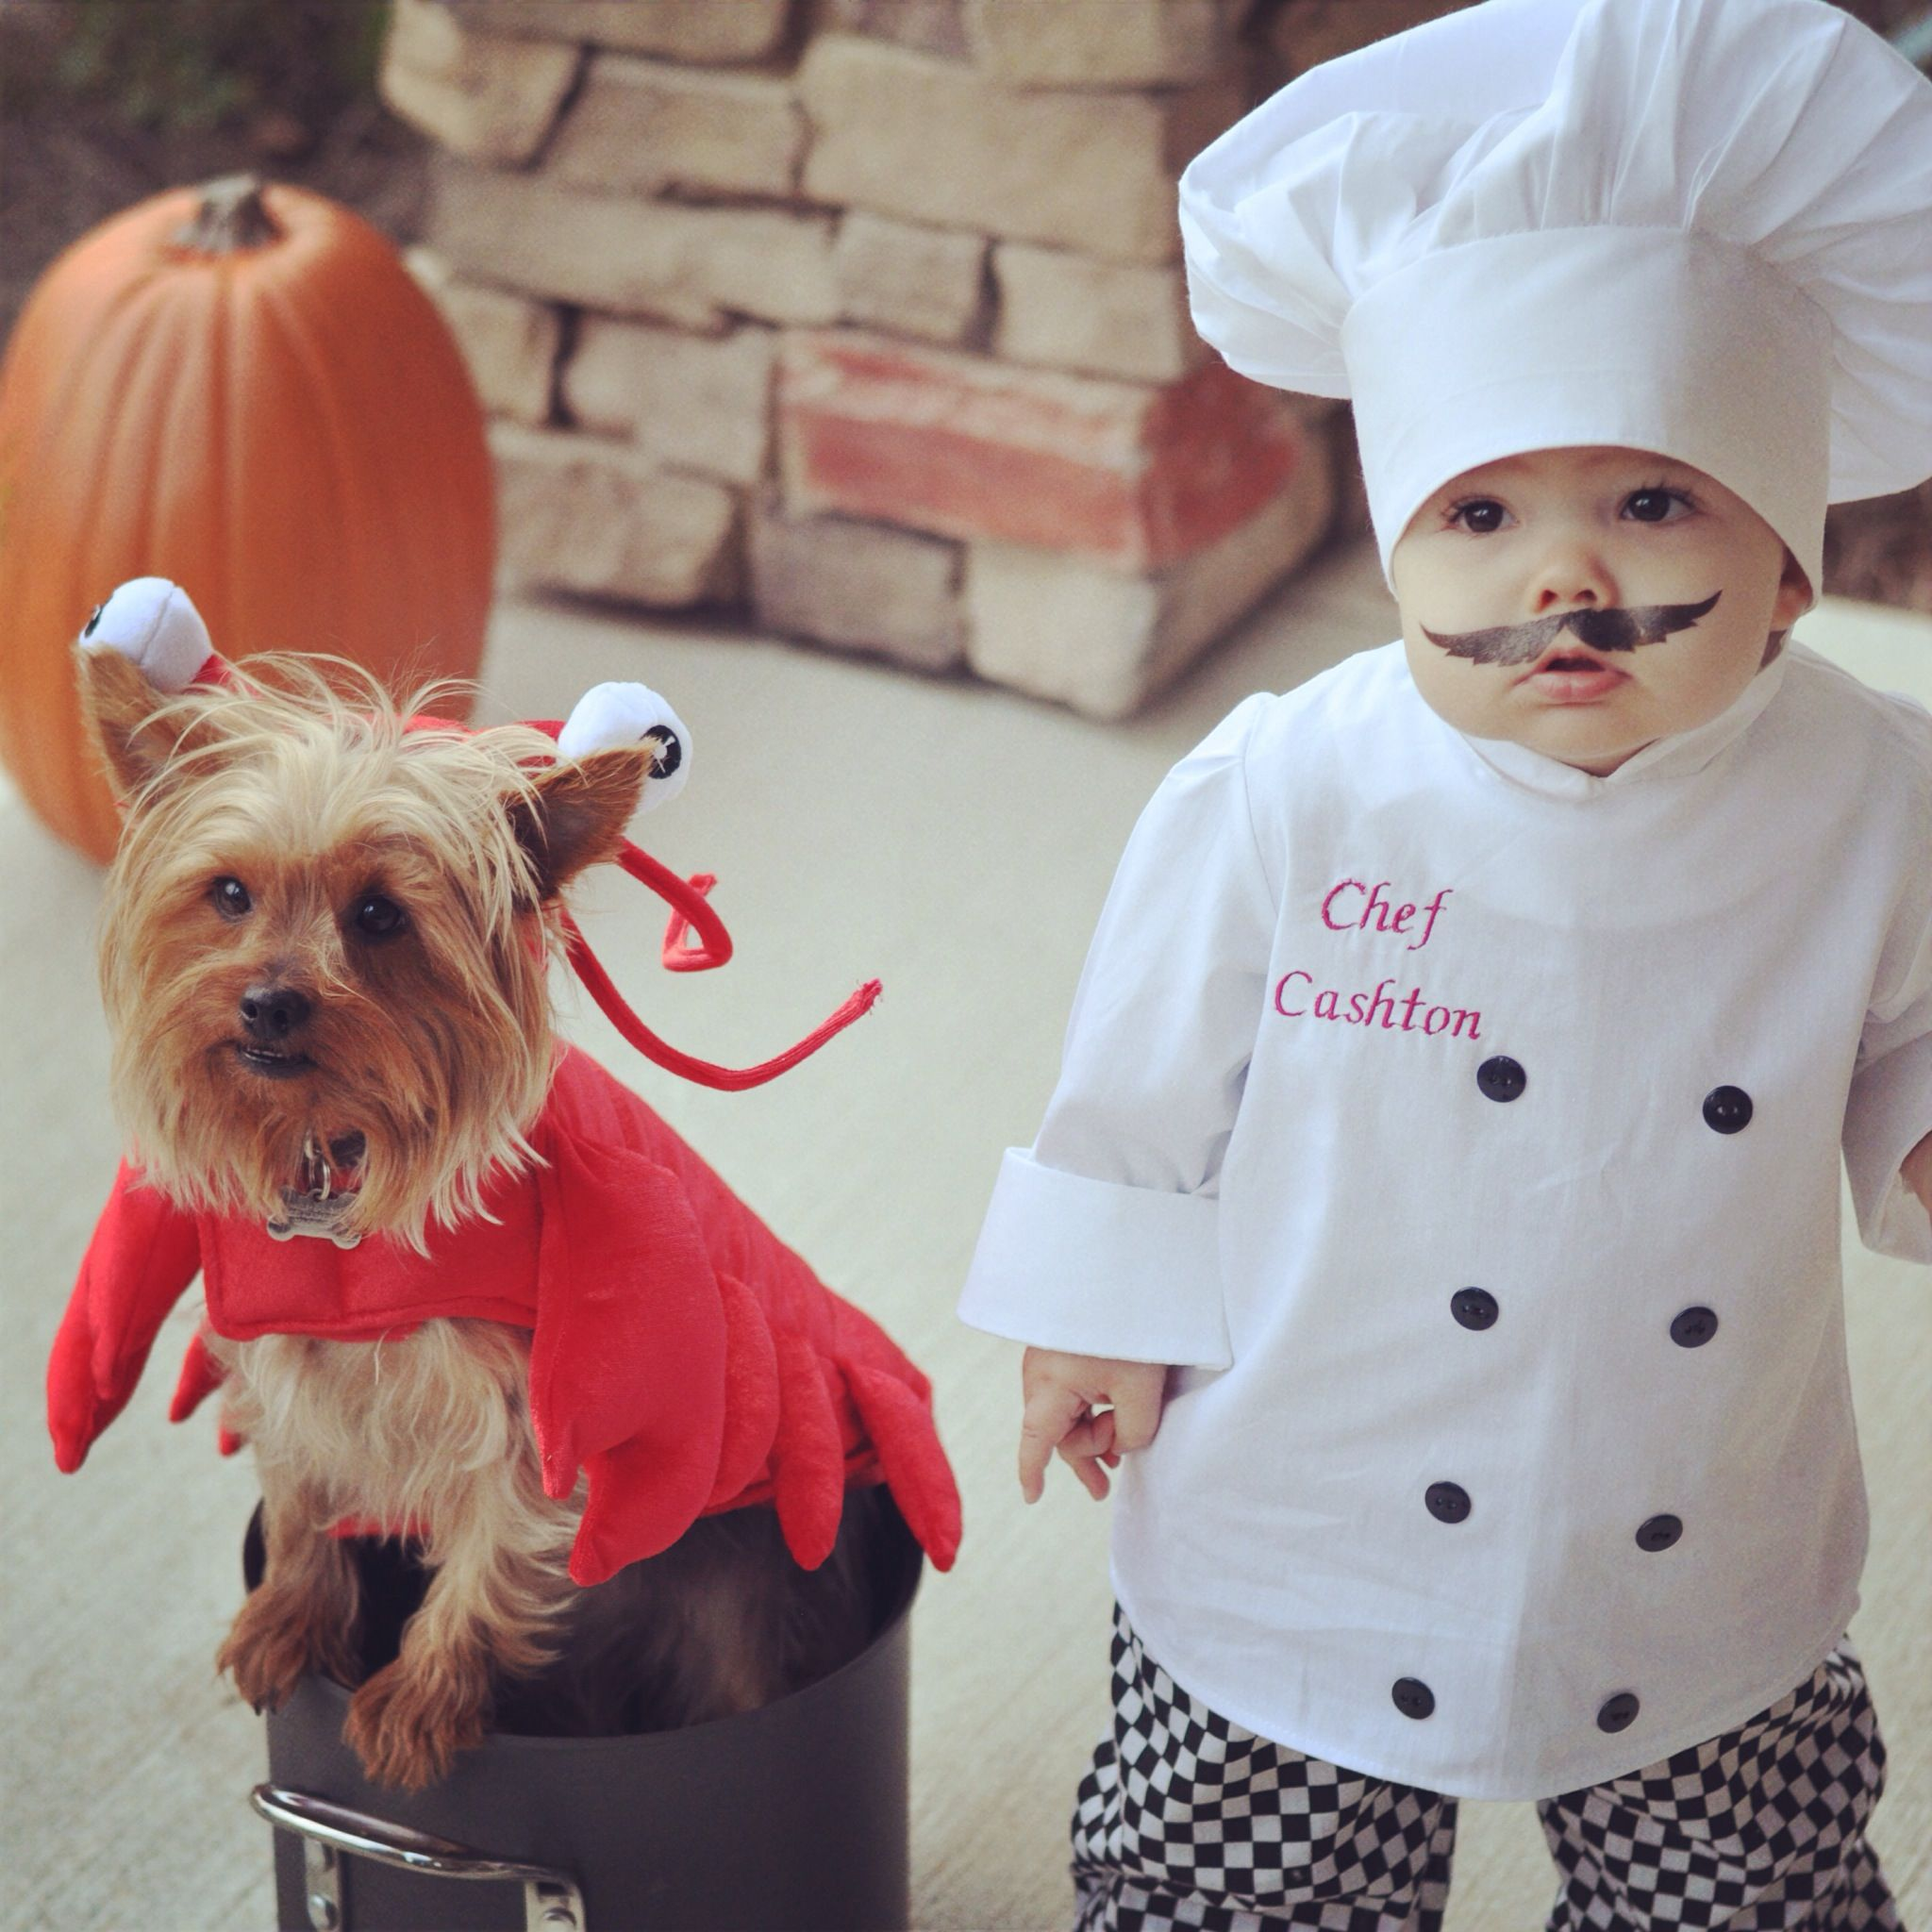 Chef toddler costume and lobster dog costume. Halloween 2014. Baby Chef by Jaime Spencer @ awelldressedlife.com